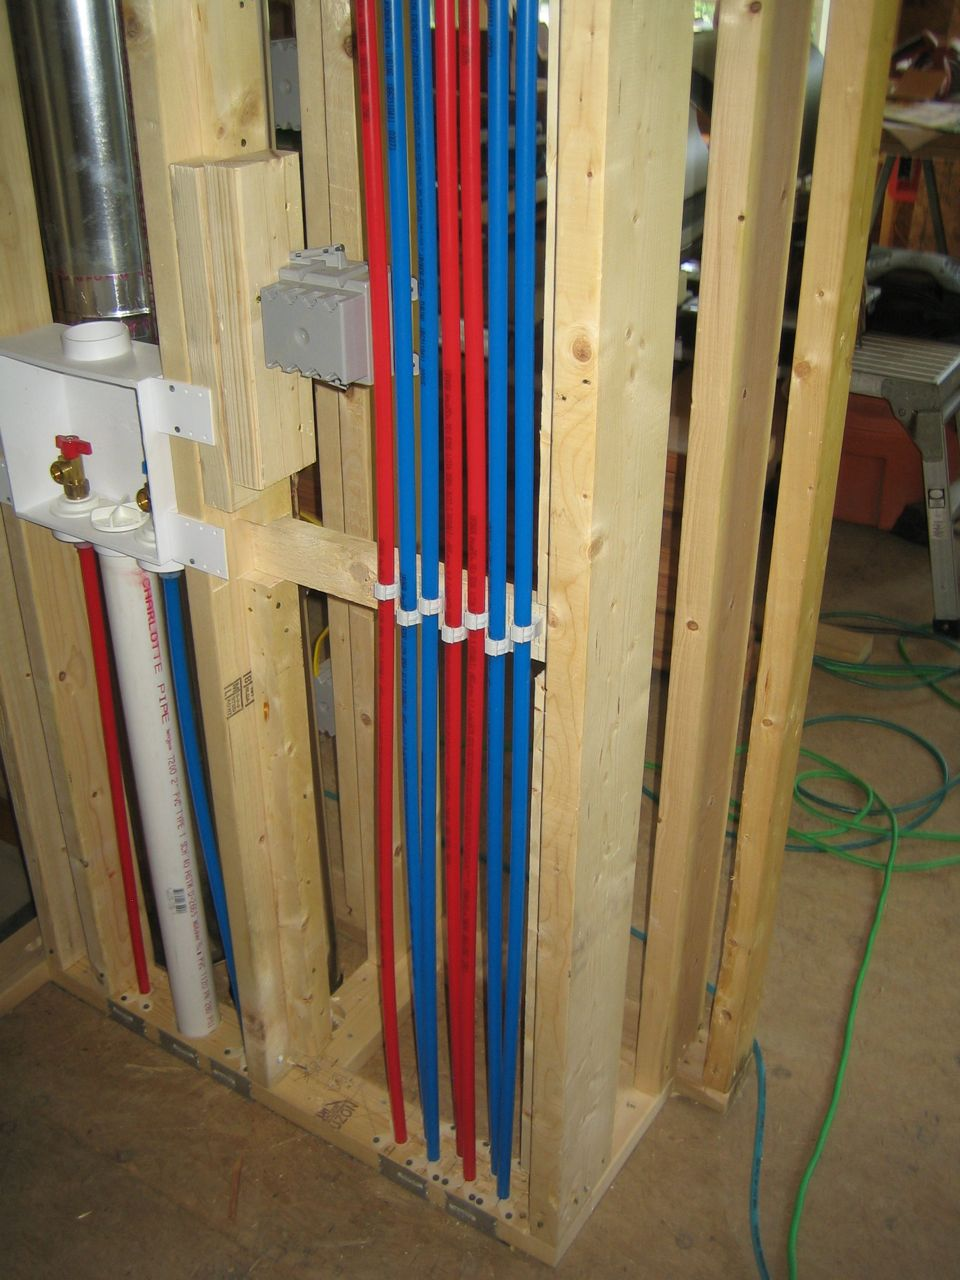 Insulate pex pipes pipe insulation suppliers for Pex water line problems